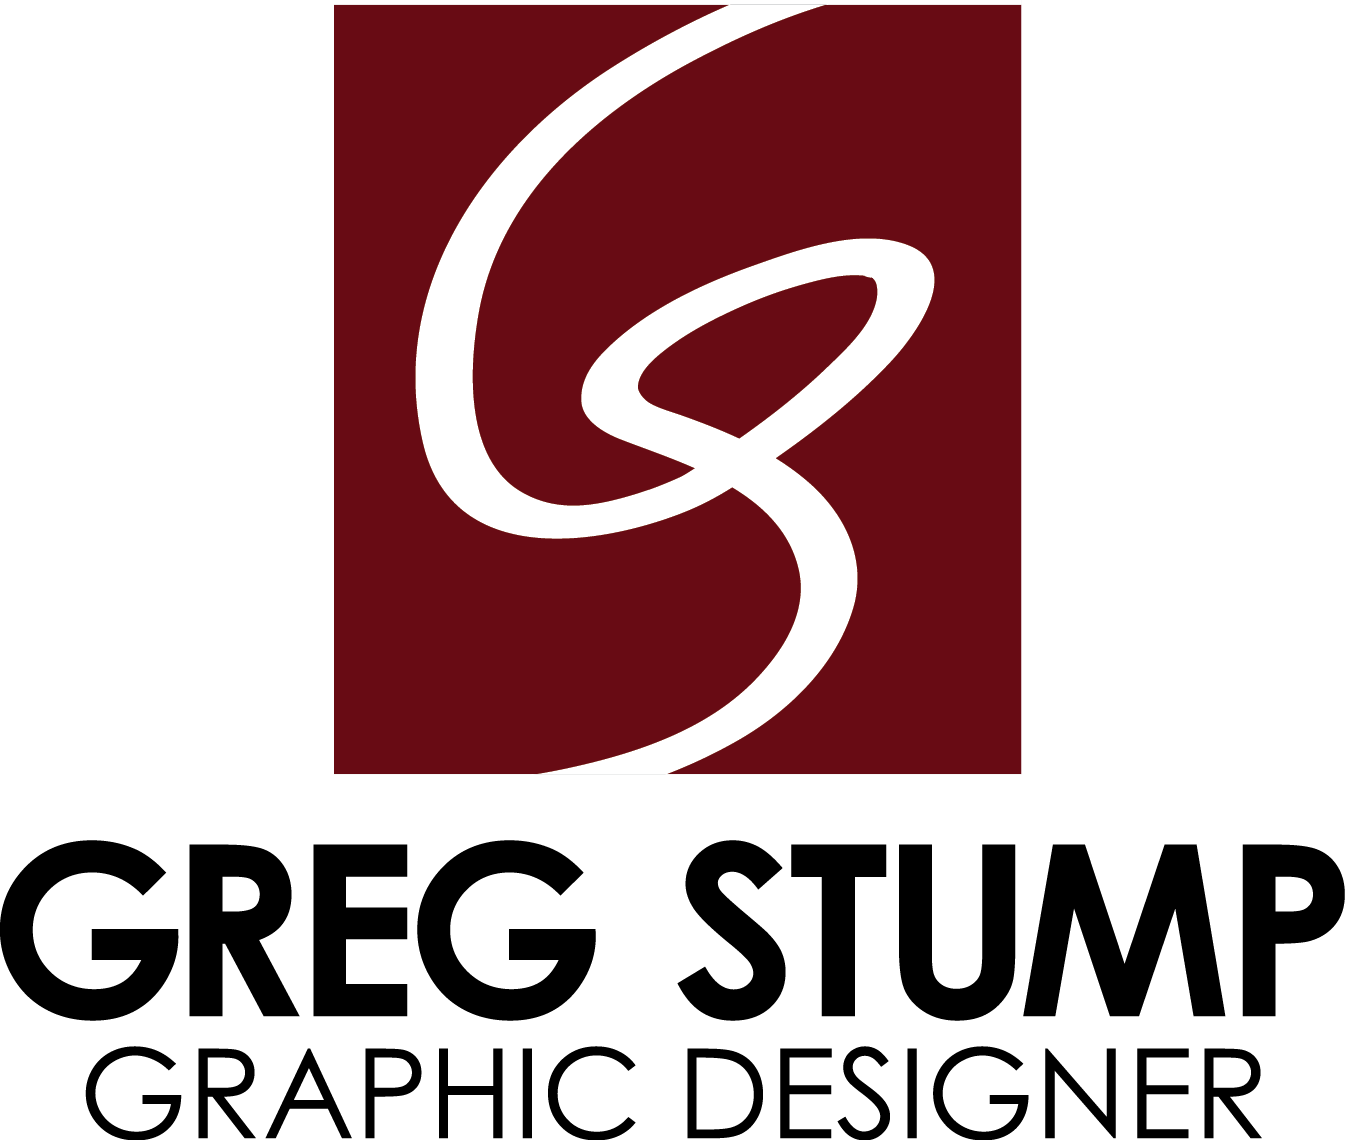 Greg Stump - Graphic Designer